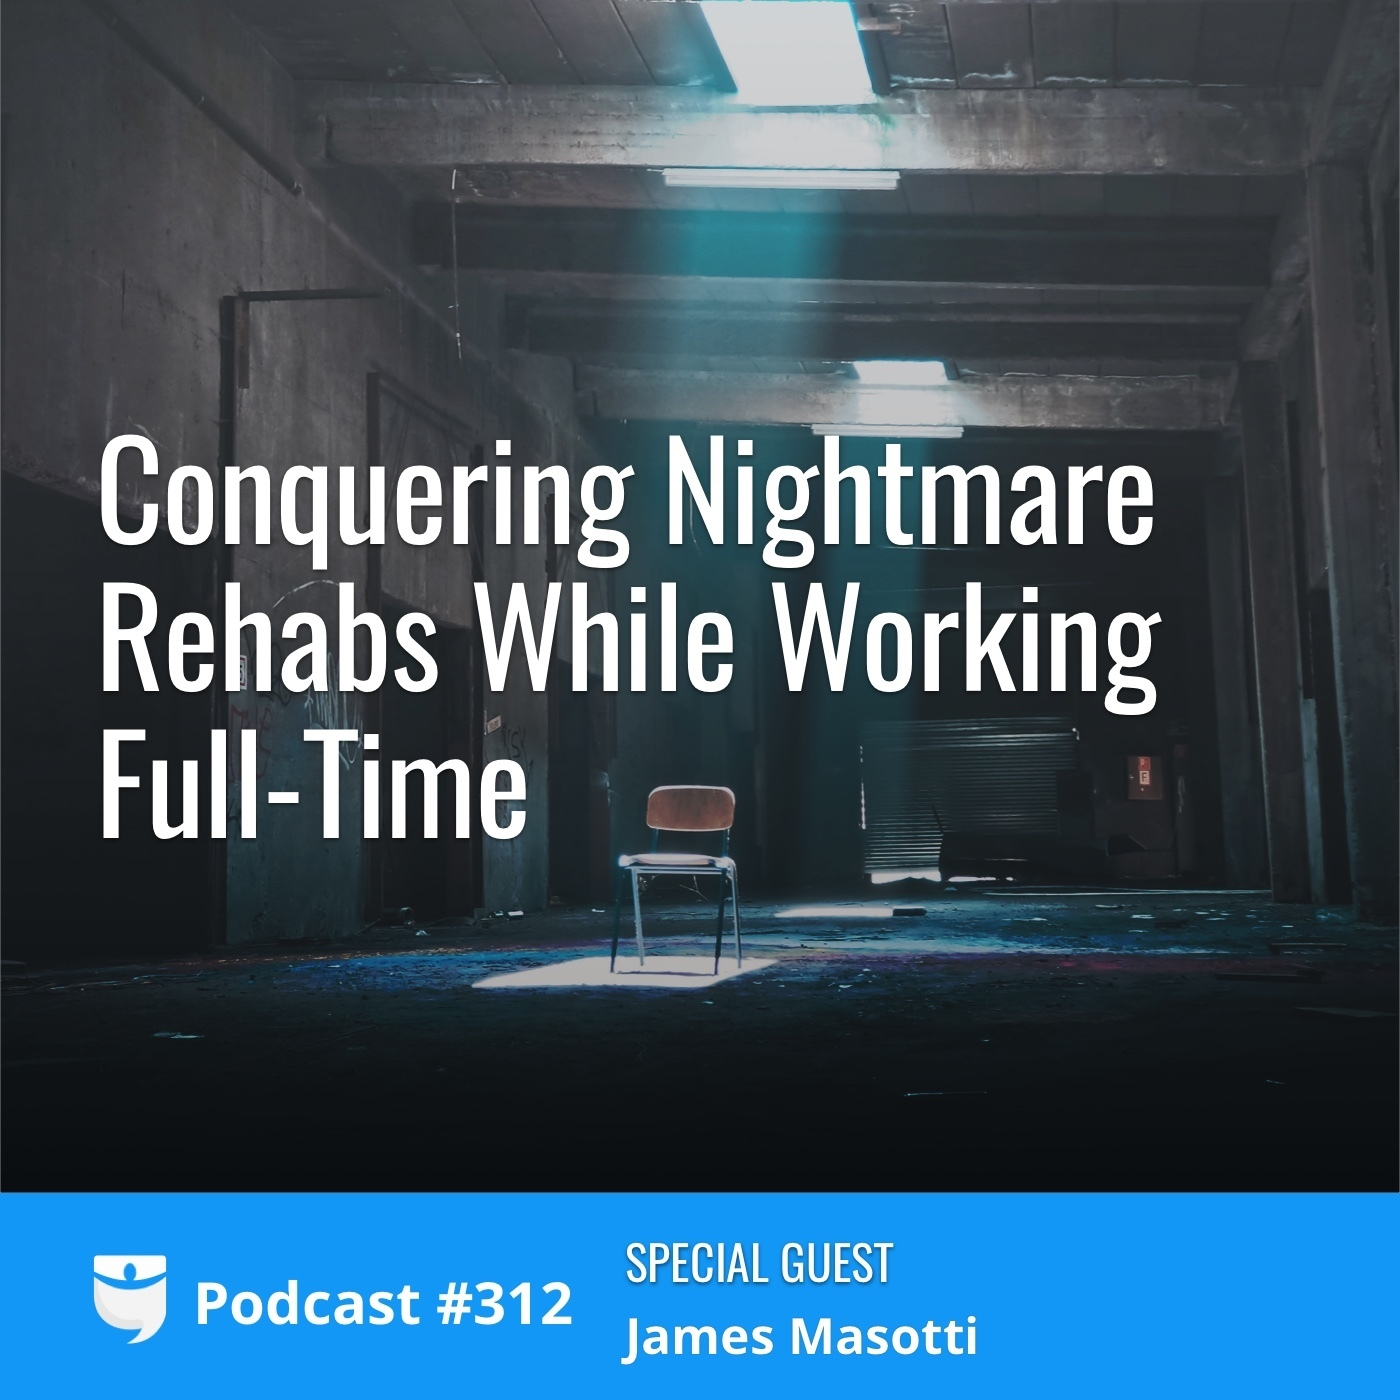 312: Conquering Nightmare Rehabs While Working Full-Time with BRRRR Investor James Masotti